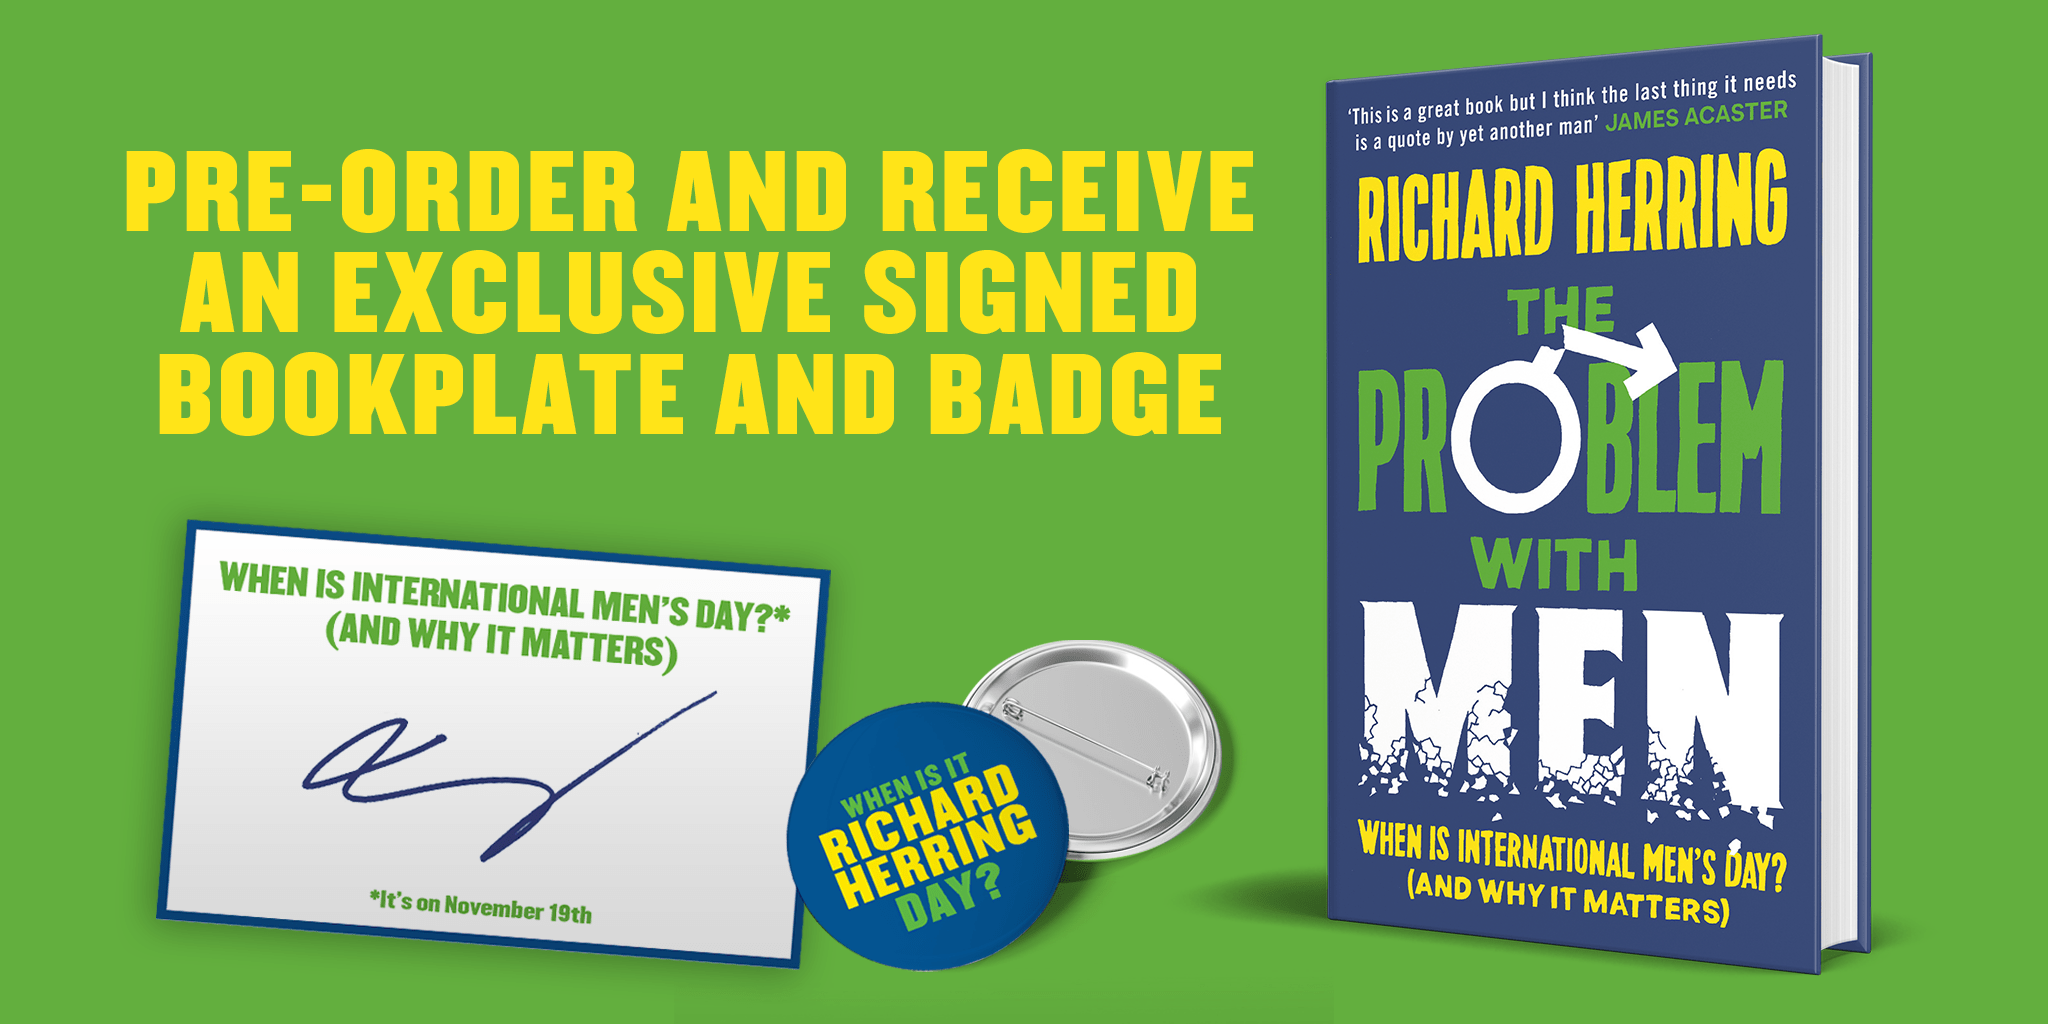 Pre-order The Problem With Men by Richard Herring and receive an exclusive signed bookplate and badge